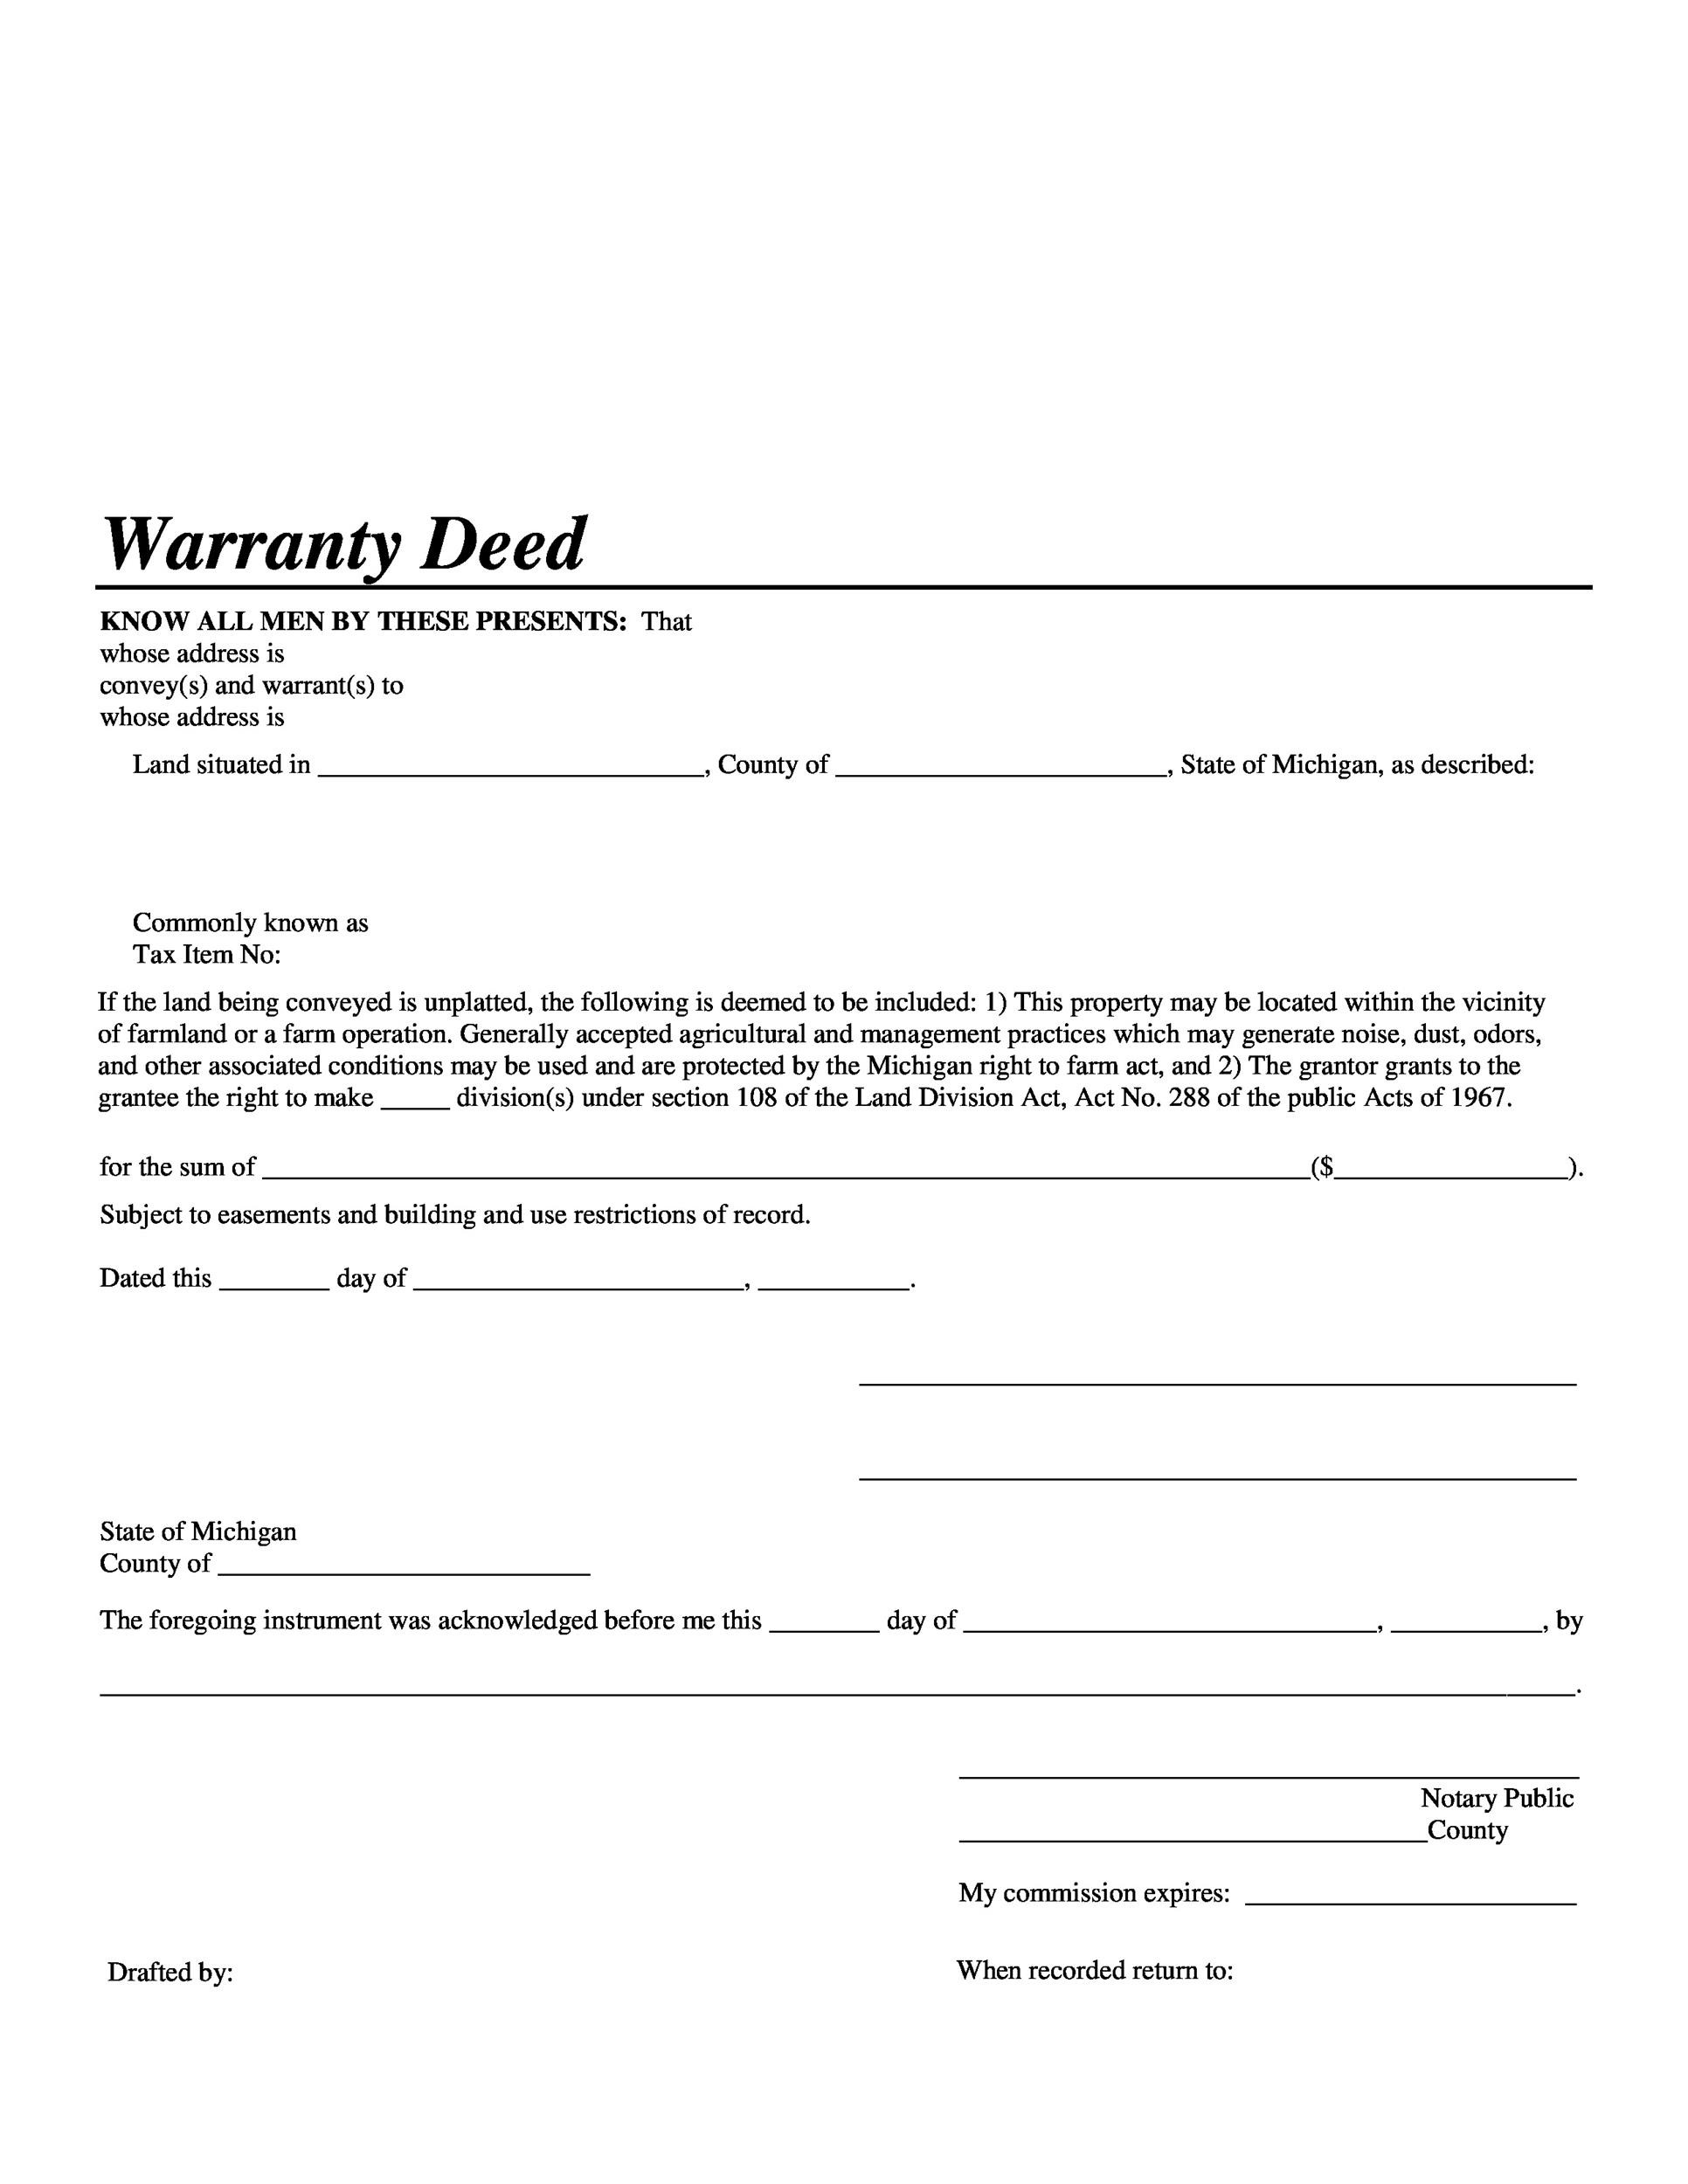 Free Warranty deed template 25